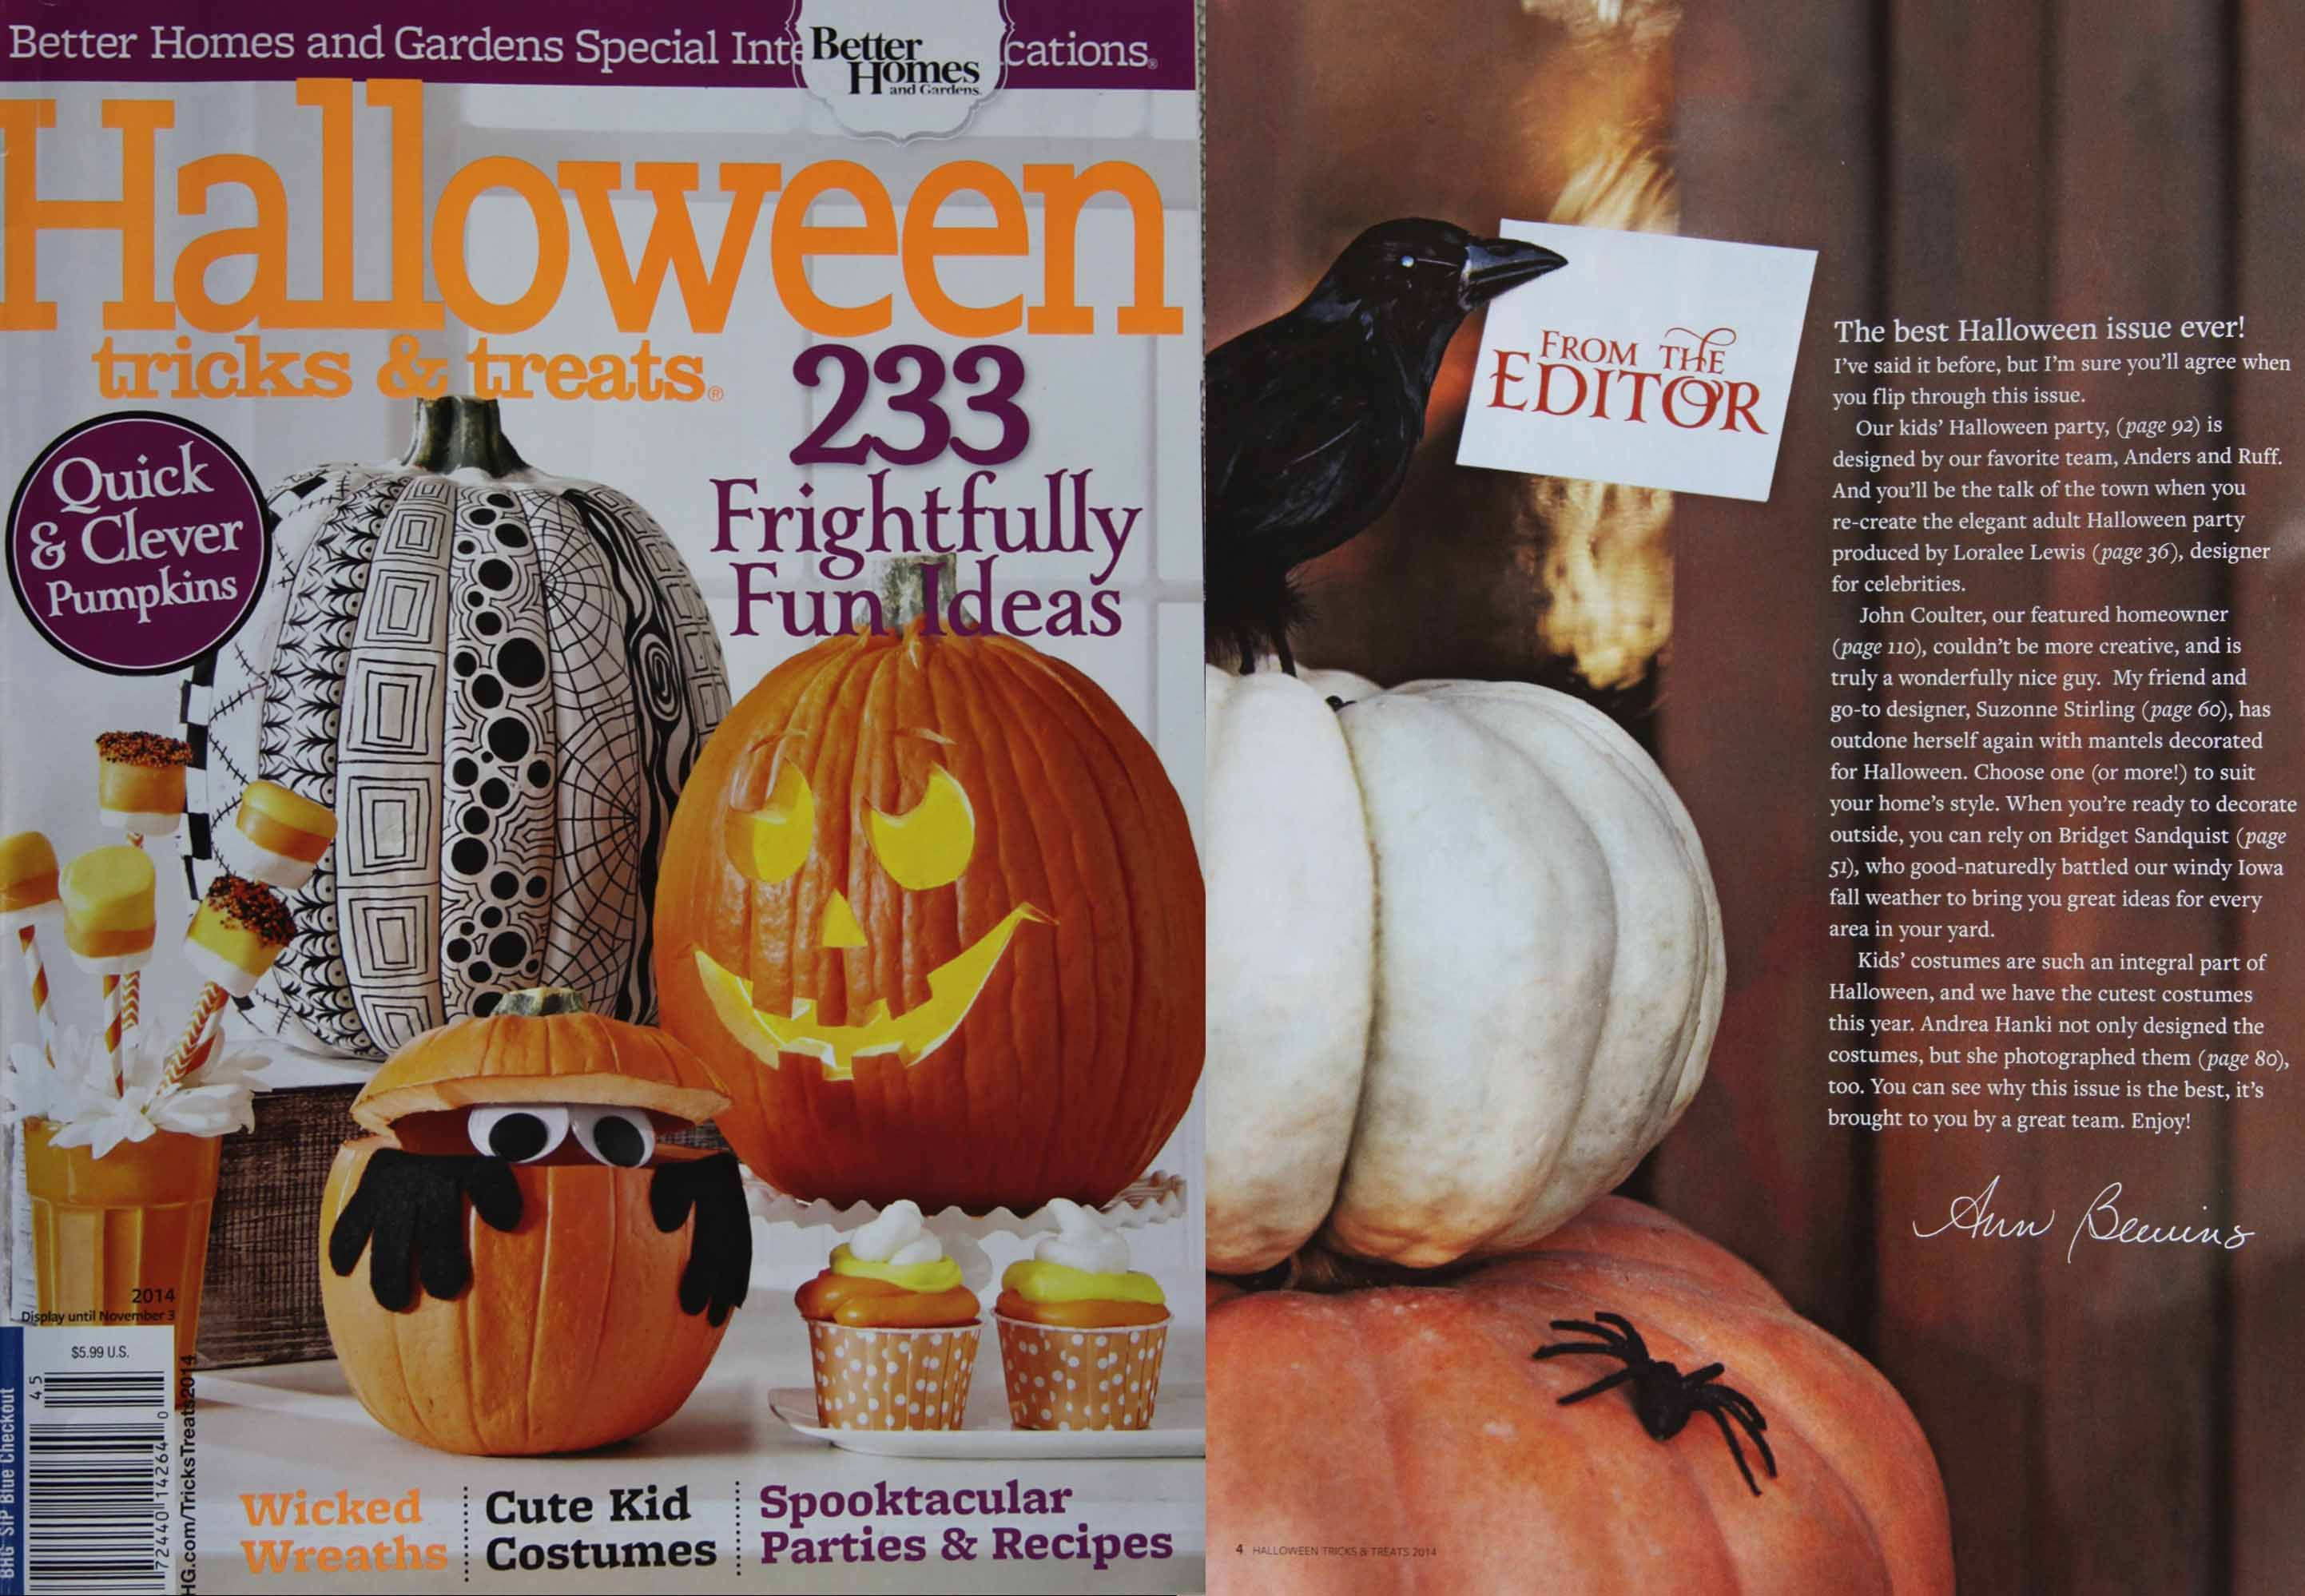 better homes and gardens halloween magazine download all the free printables at wwwbhg